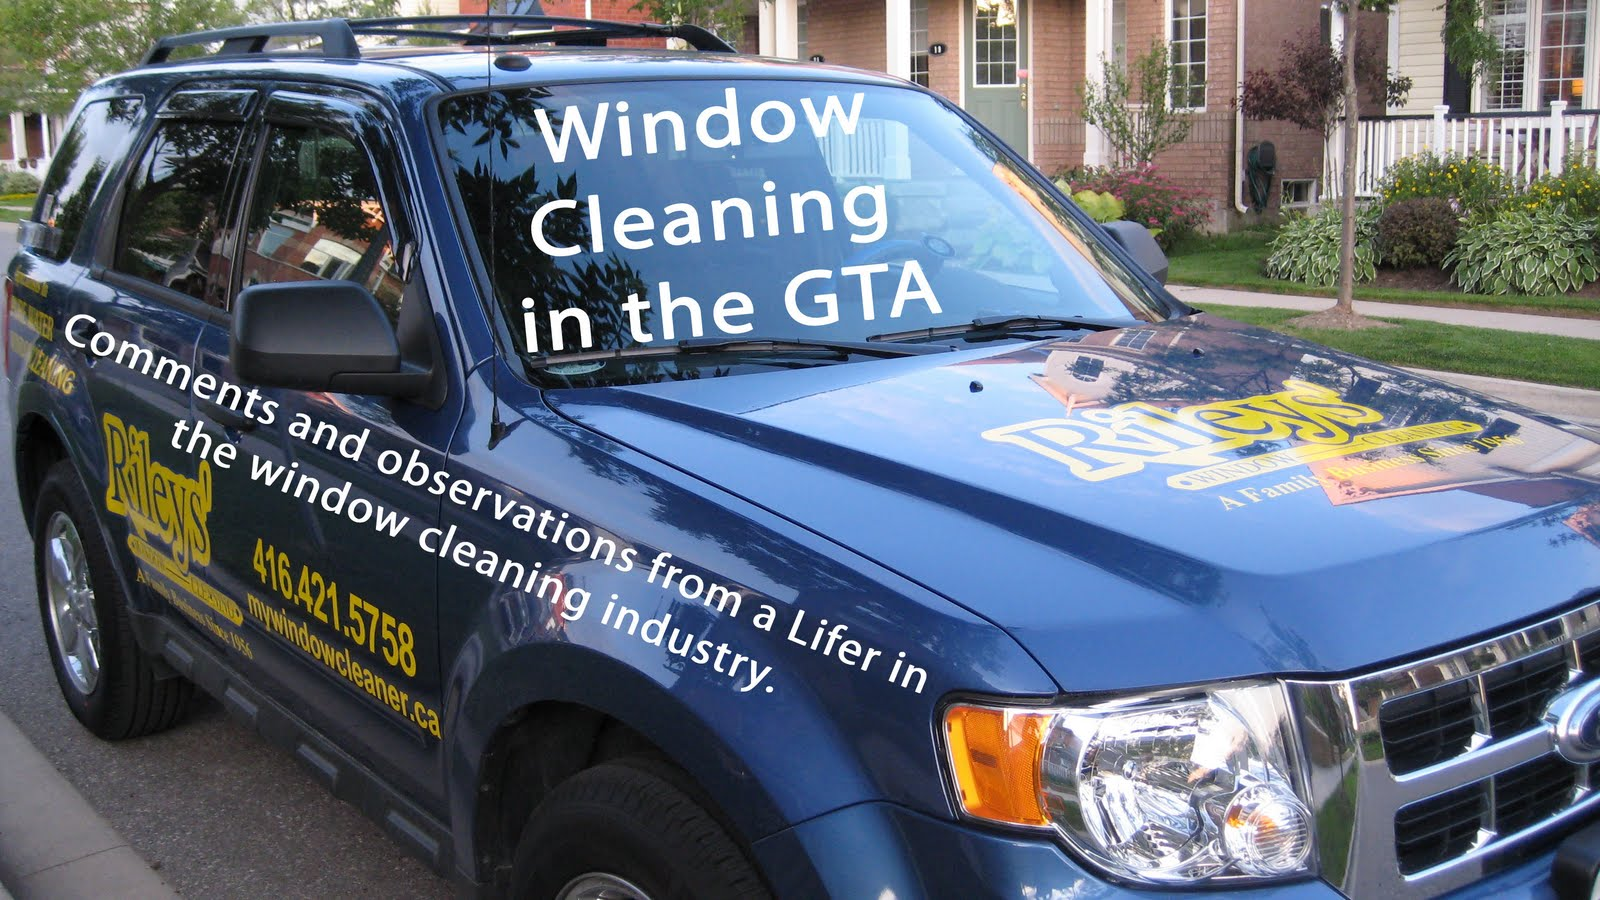 Cleaning windows in the GTA